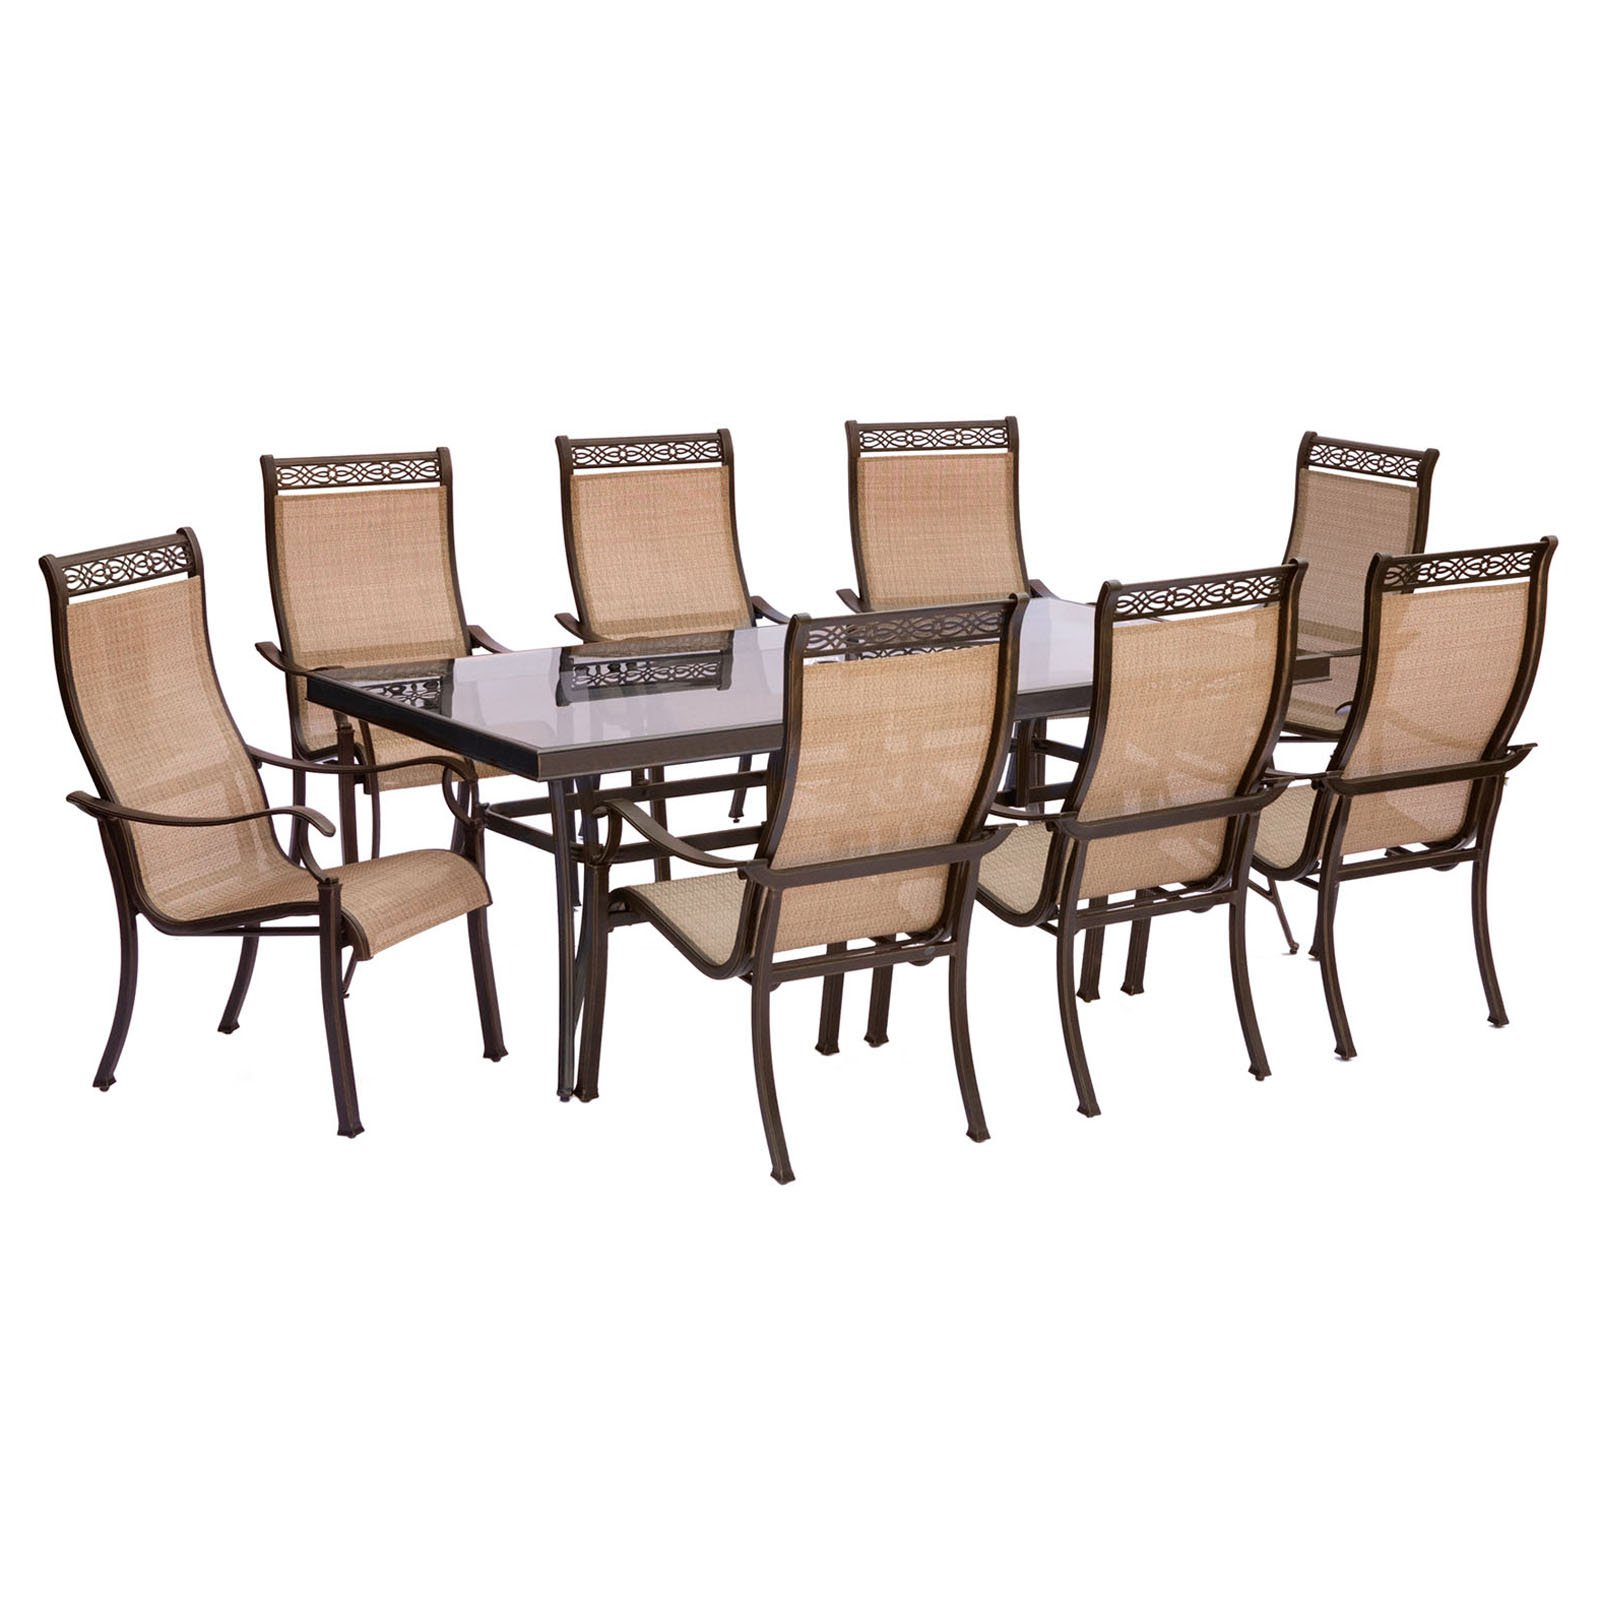 "Hanover Outdoor Monaco 9-Piece Sling Dining Set with 42"" x 84"" Glass-Top Table and 8 Stationary Chairs, Cedar"